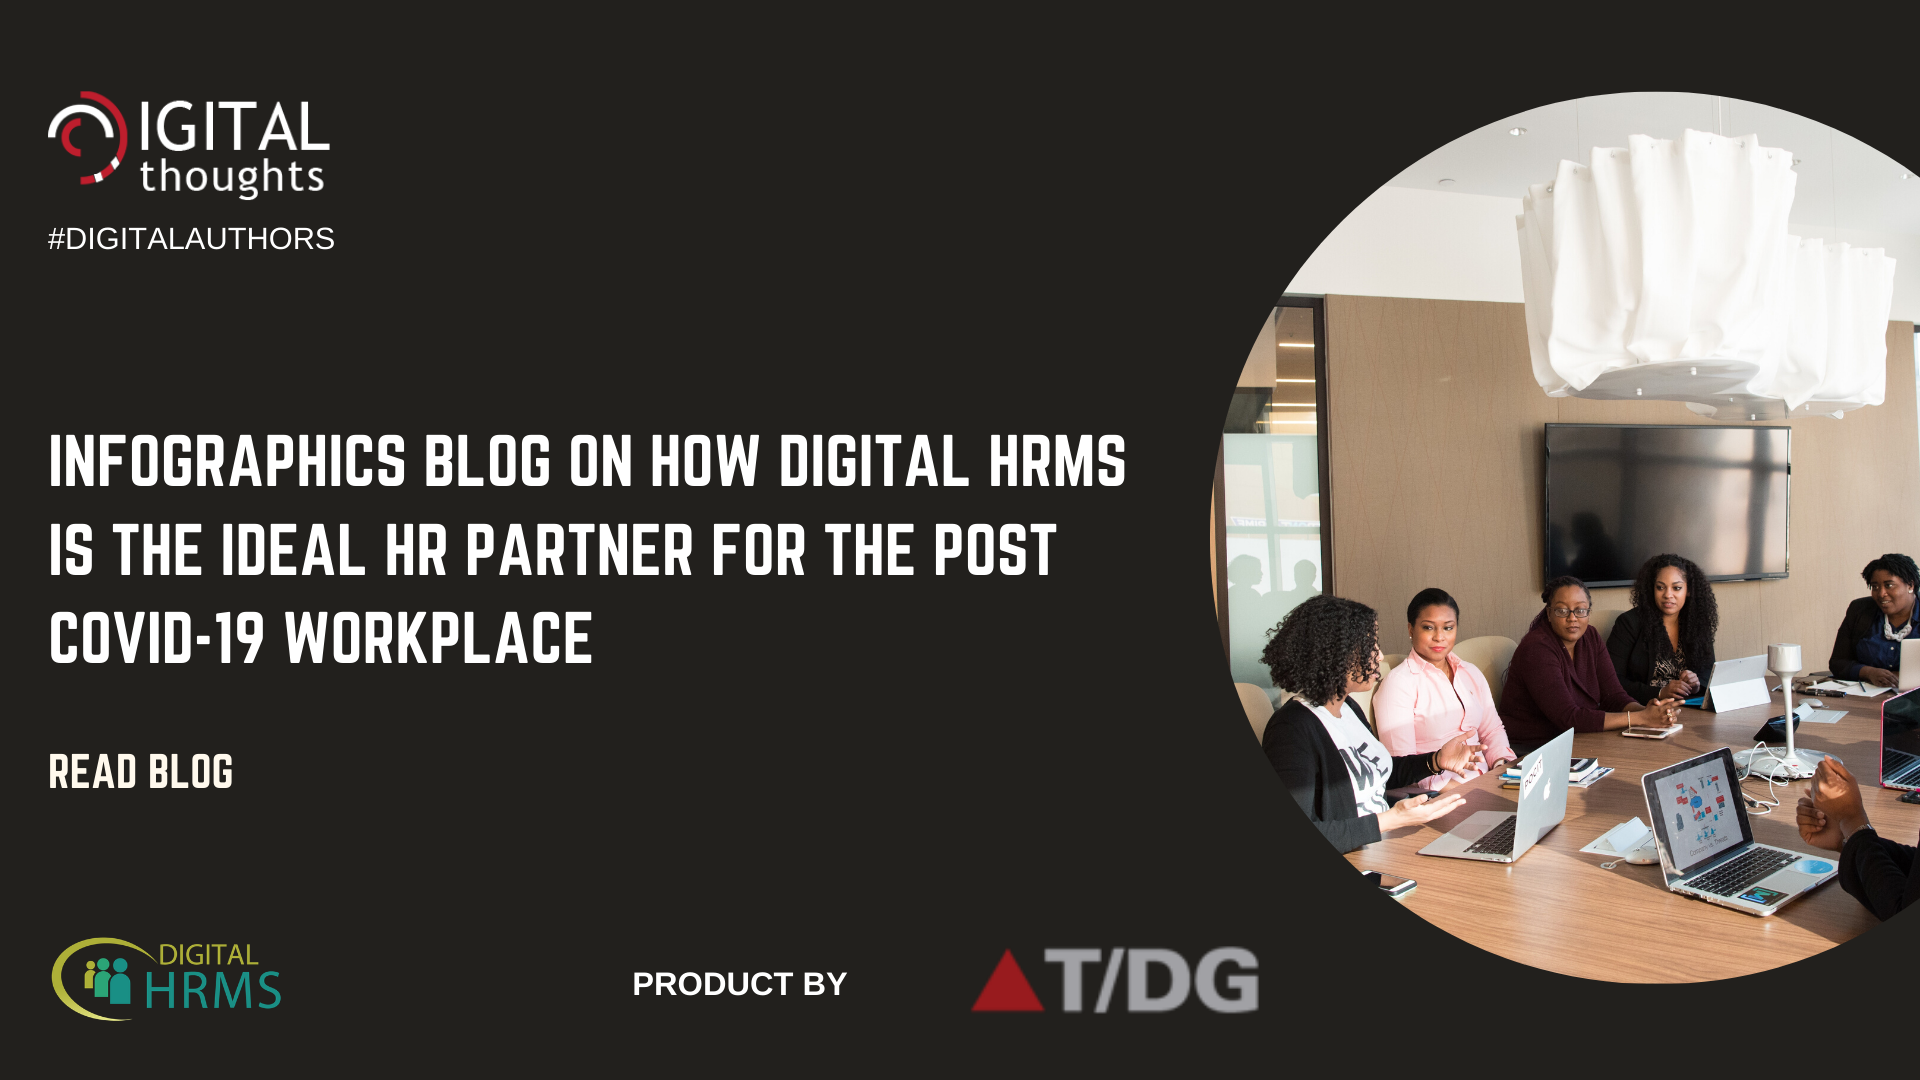 Infographics Blog on How Digital HRMS is Your Ideal HR Partner for the Post Covid-19 Workplace